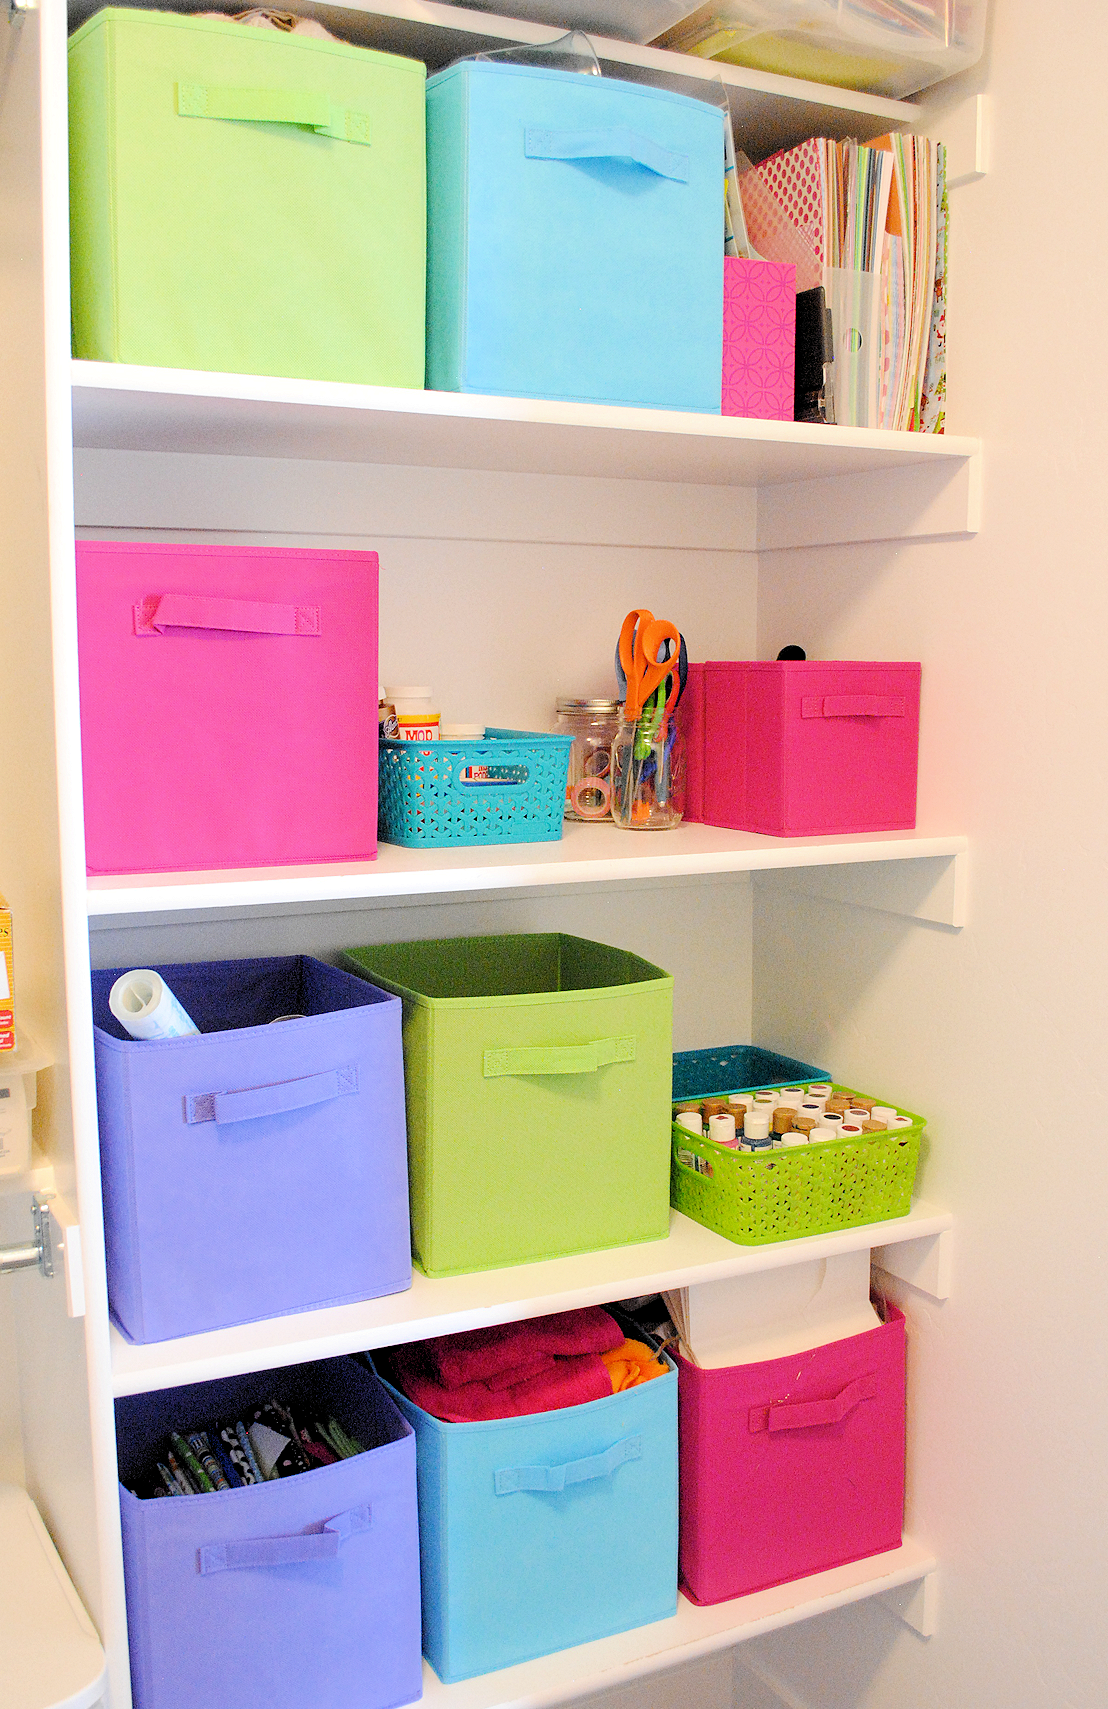 Great Organizing Craft Space in Small Room 1108 x 1709 · 3447 kB · png